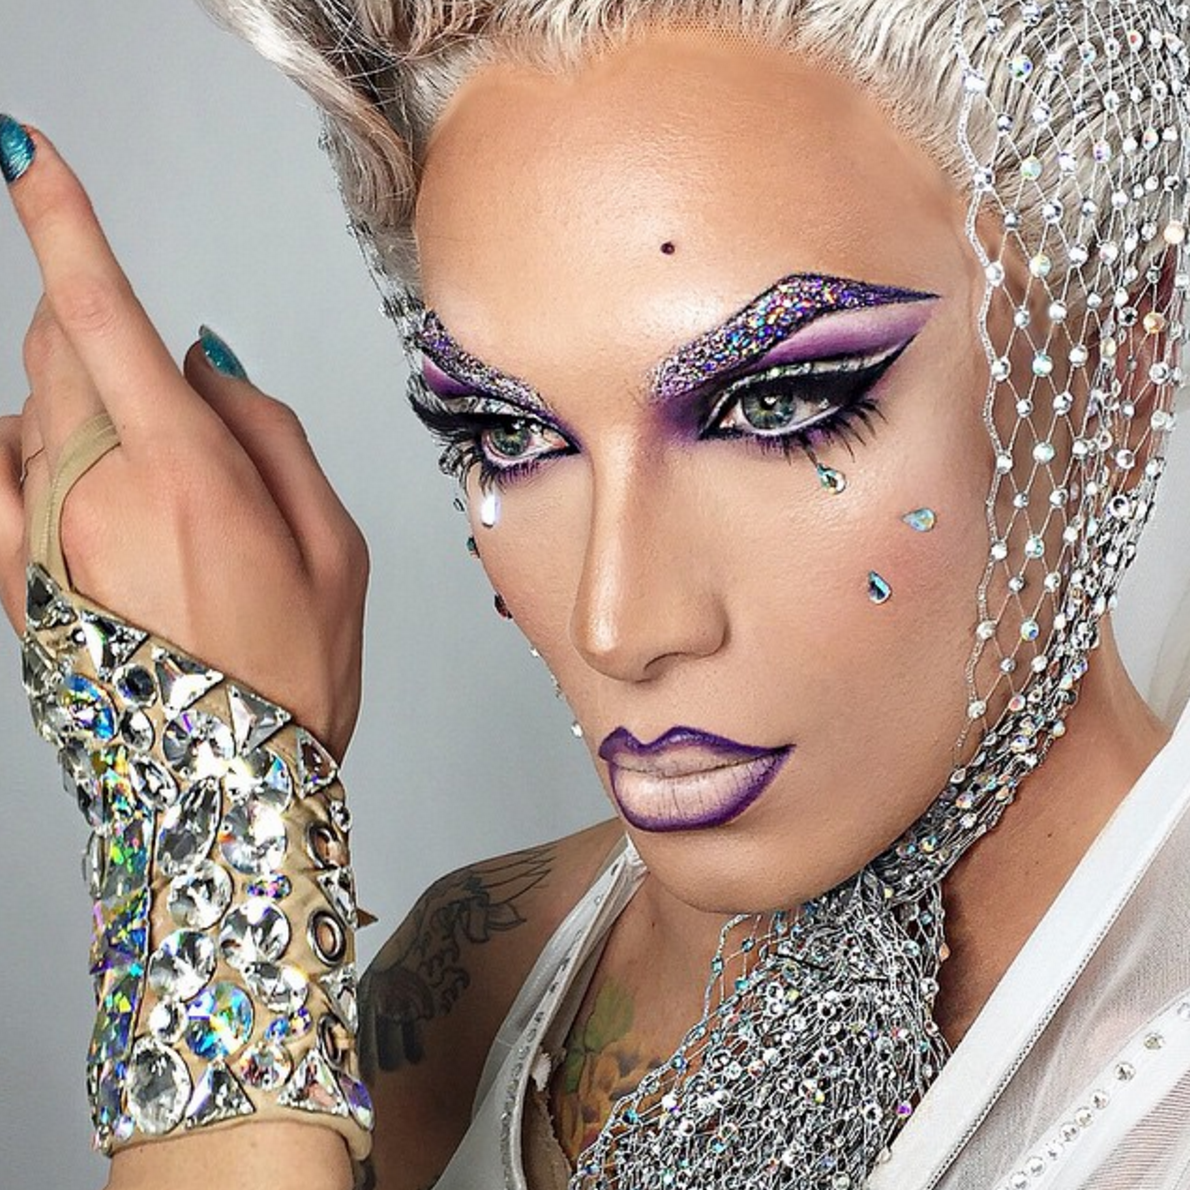 @missfamenyc is able to model each of her looks like a seasoned pro, using her background as a model to strike the perfect poses and angles to celebrate her makeup.  More: http://blog.furlesscosmetics.com/miss-fame/